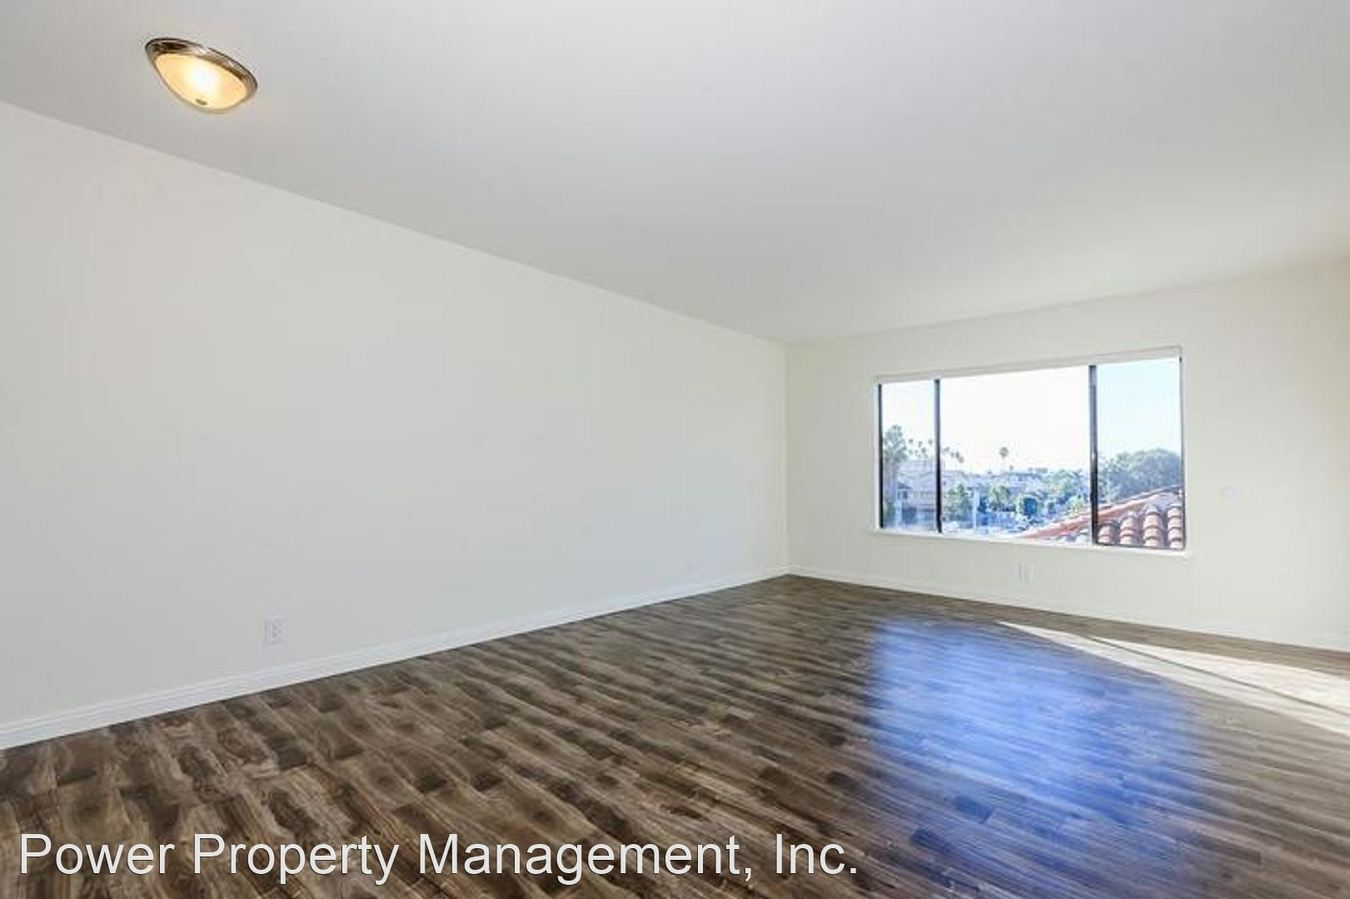 2 Bedrooms 2 Bathrooms Apartment for rent at 1625 Crenshaw Blvd in Los Angeles, CA